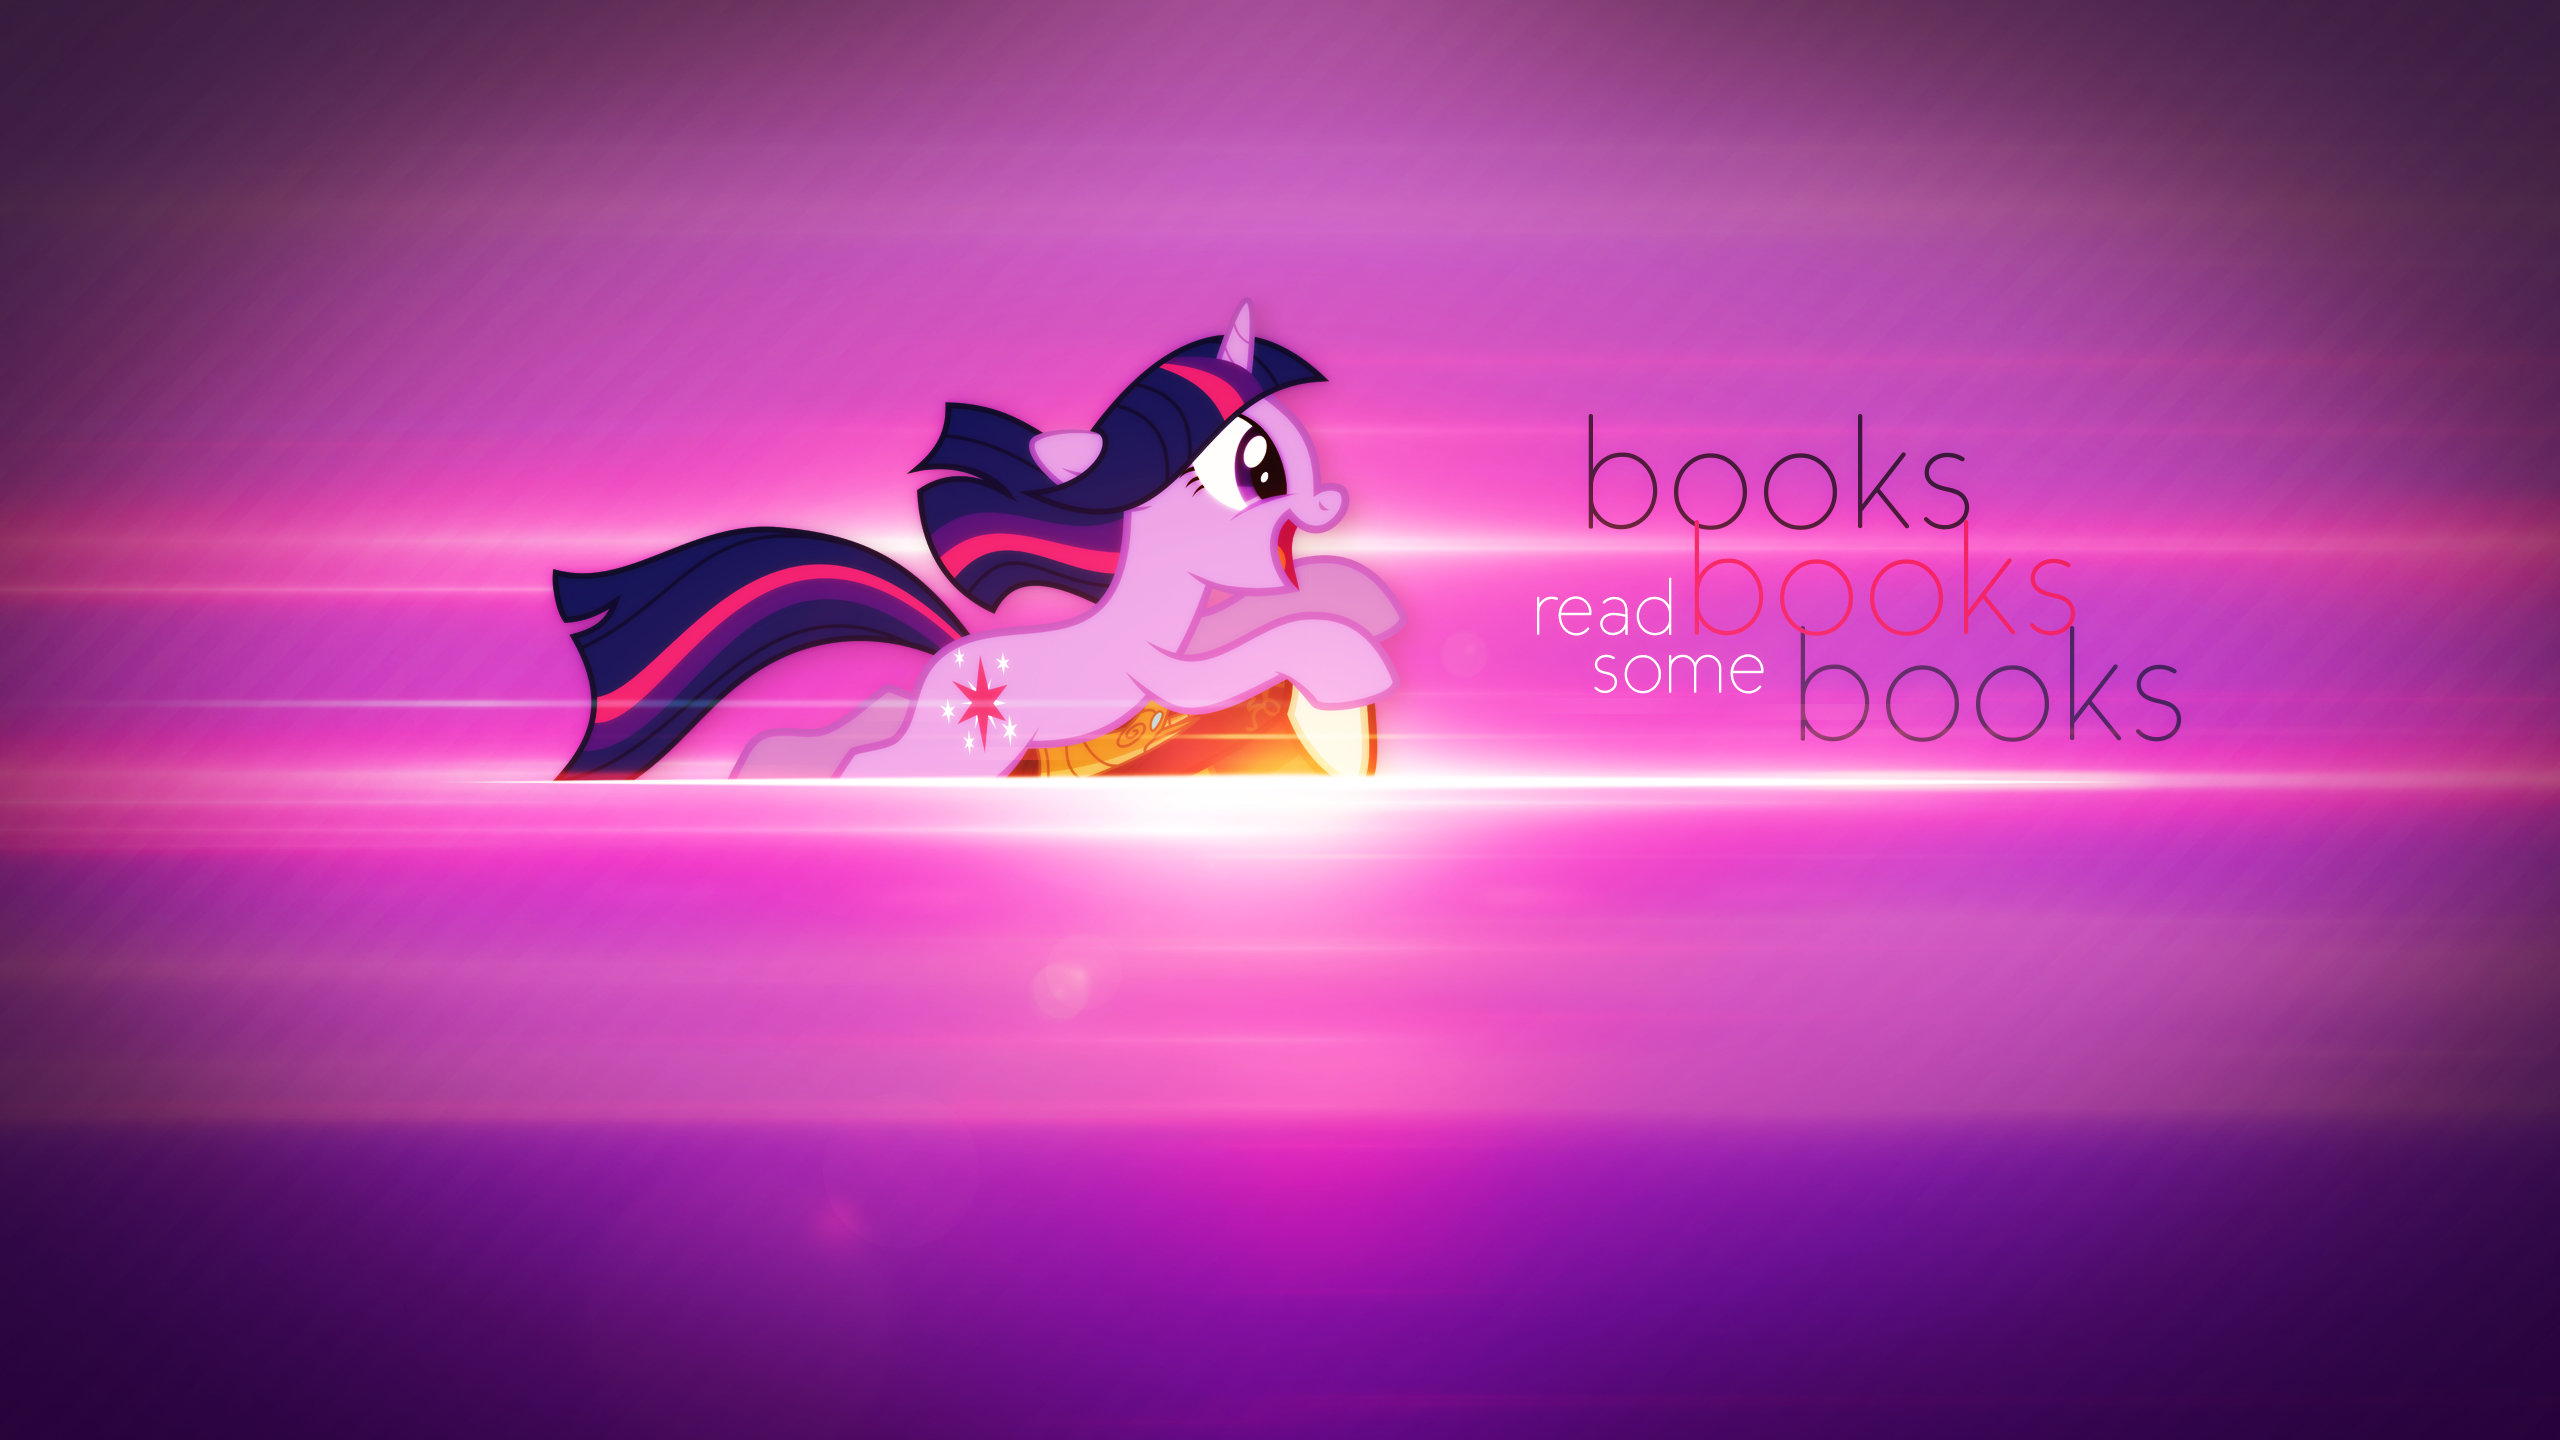 [28] Read Some Books! (collab with Vexx3) by anbolanos91, DoktorRainbowFridge and Vexx3